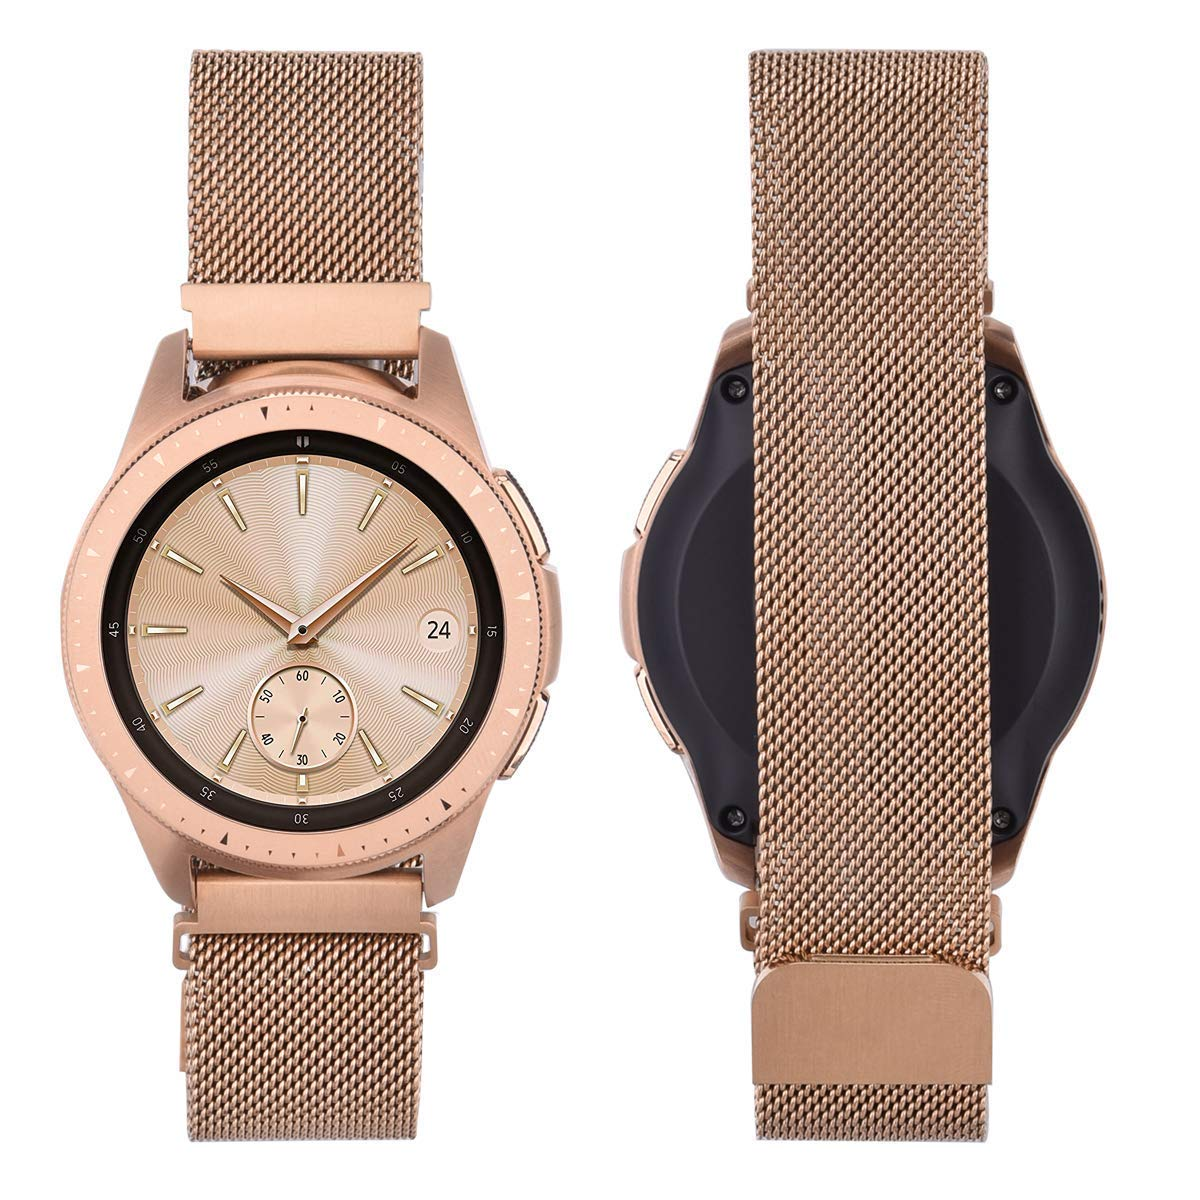 CAGOS Compatible Galaxy Watch 42mm/Galaxy Watch Active Bands Sets, 20mm 2 Pack Stainless Steel Band+Milanese Loop Mesh Bracelet for Samsung Galaxy Watch 42mm /Ticwatch E Smartwatch - Rose Gold by CAGOS (Image #4)